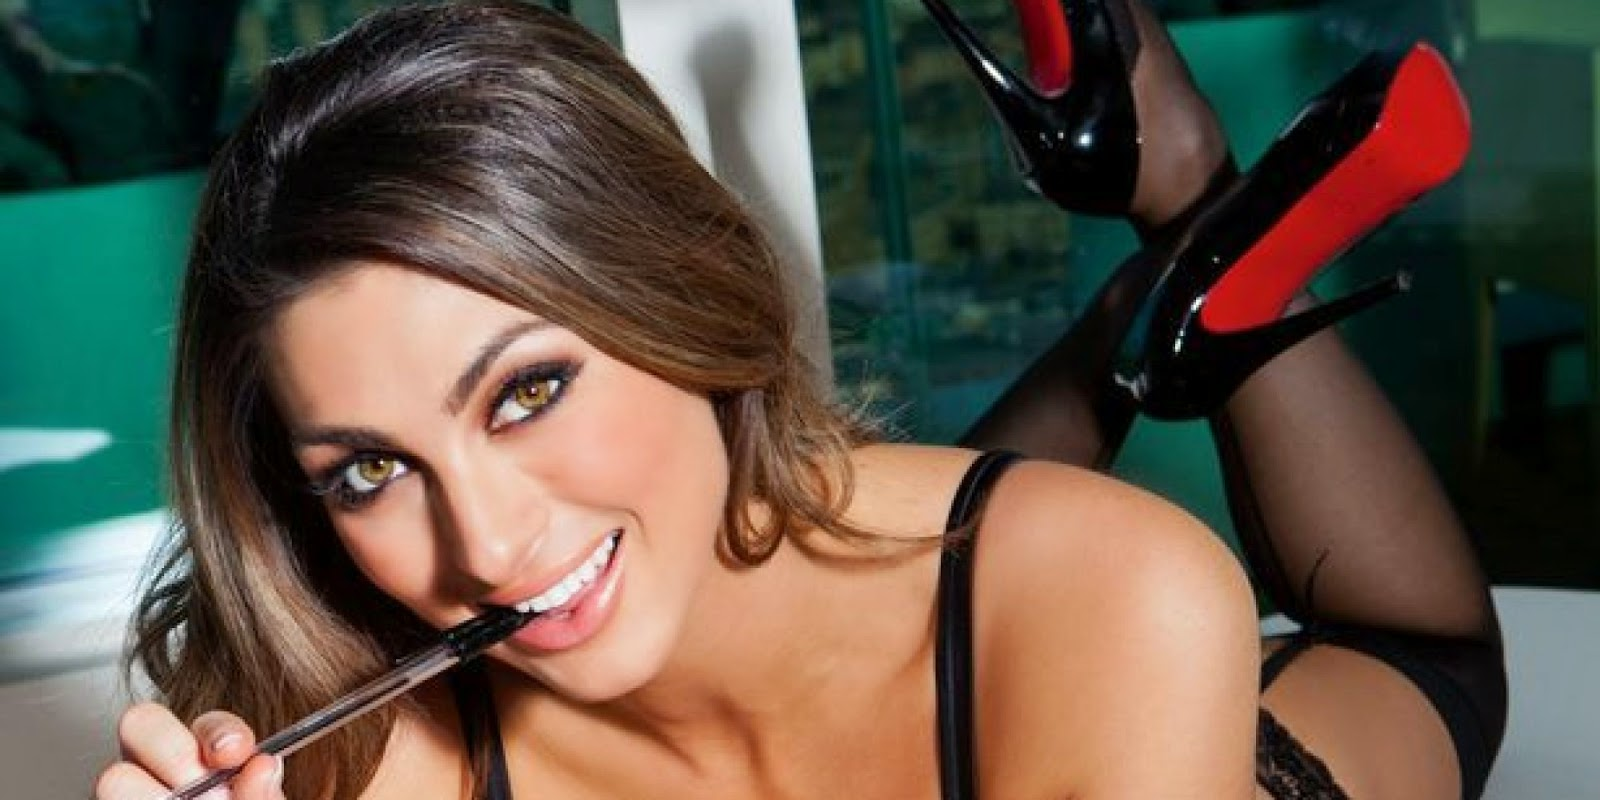 Luisa Zissman: World most Sexiest 100 woman ranking #72